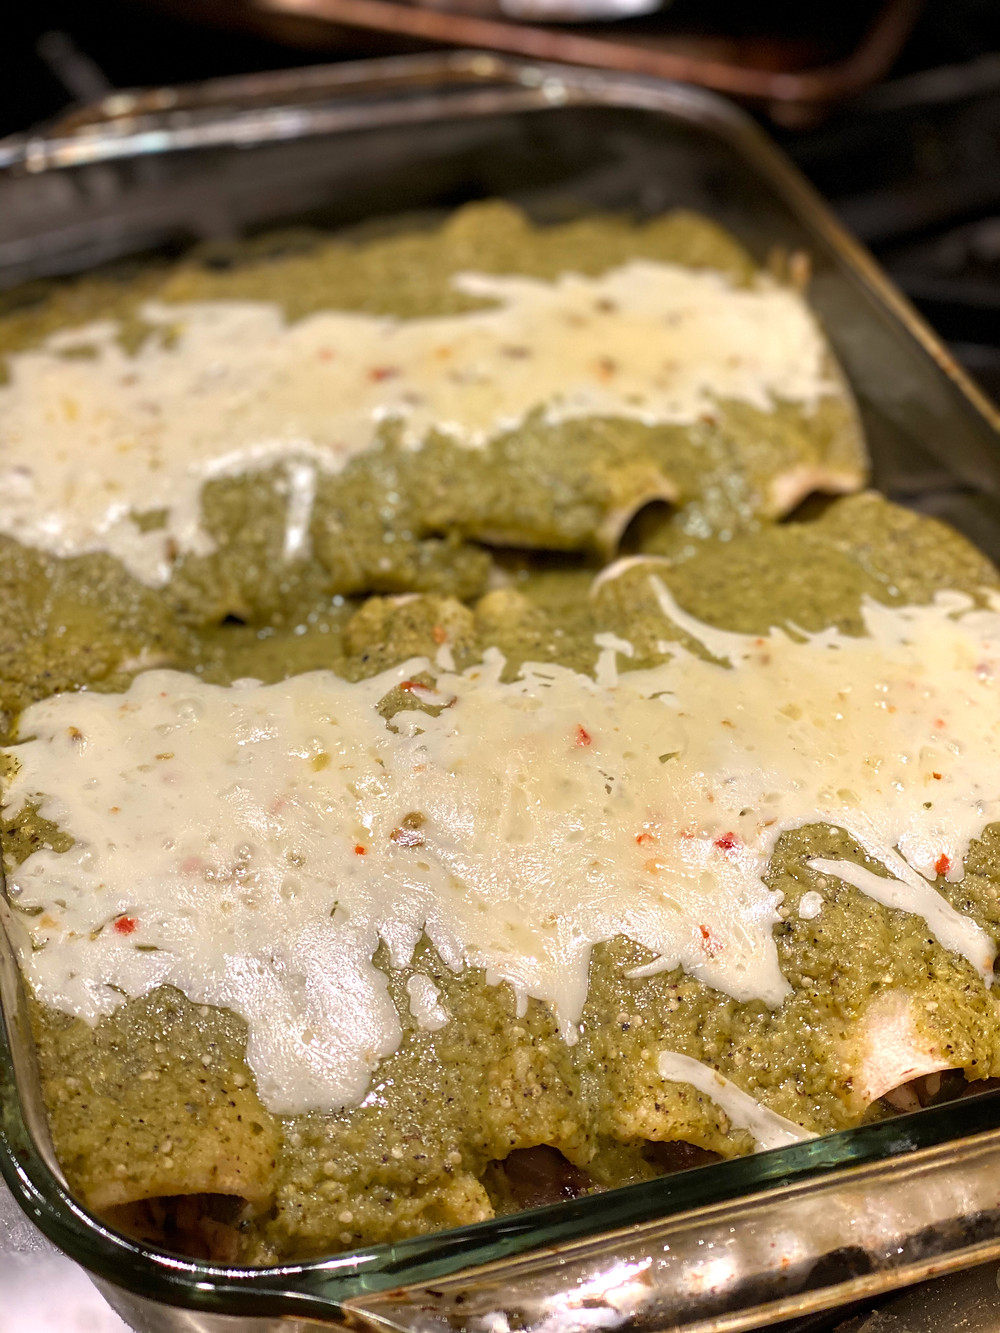 Too few tomatillos, way too much cilantro, and a general lack of flavor made these veggie enchiladas a lackluster dish